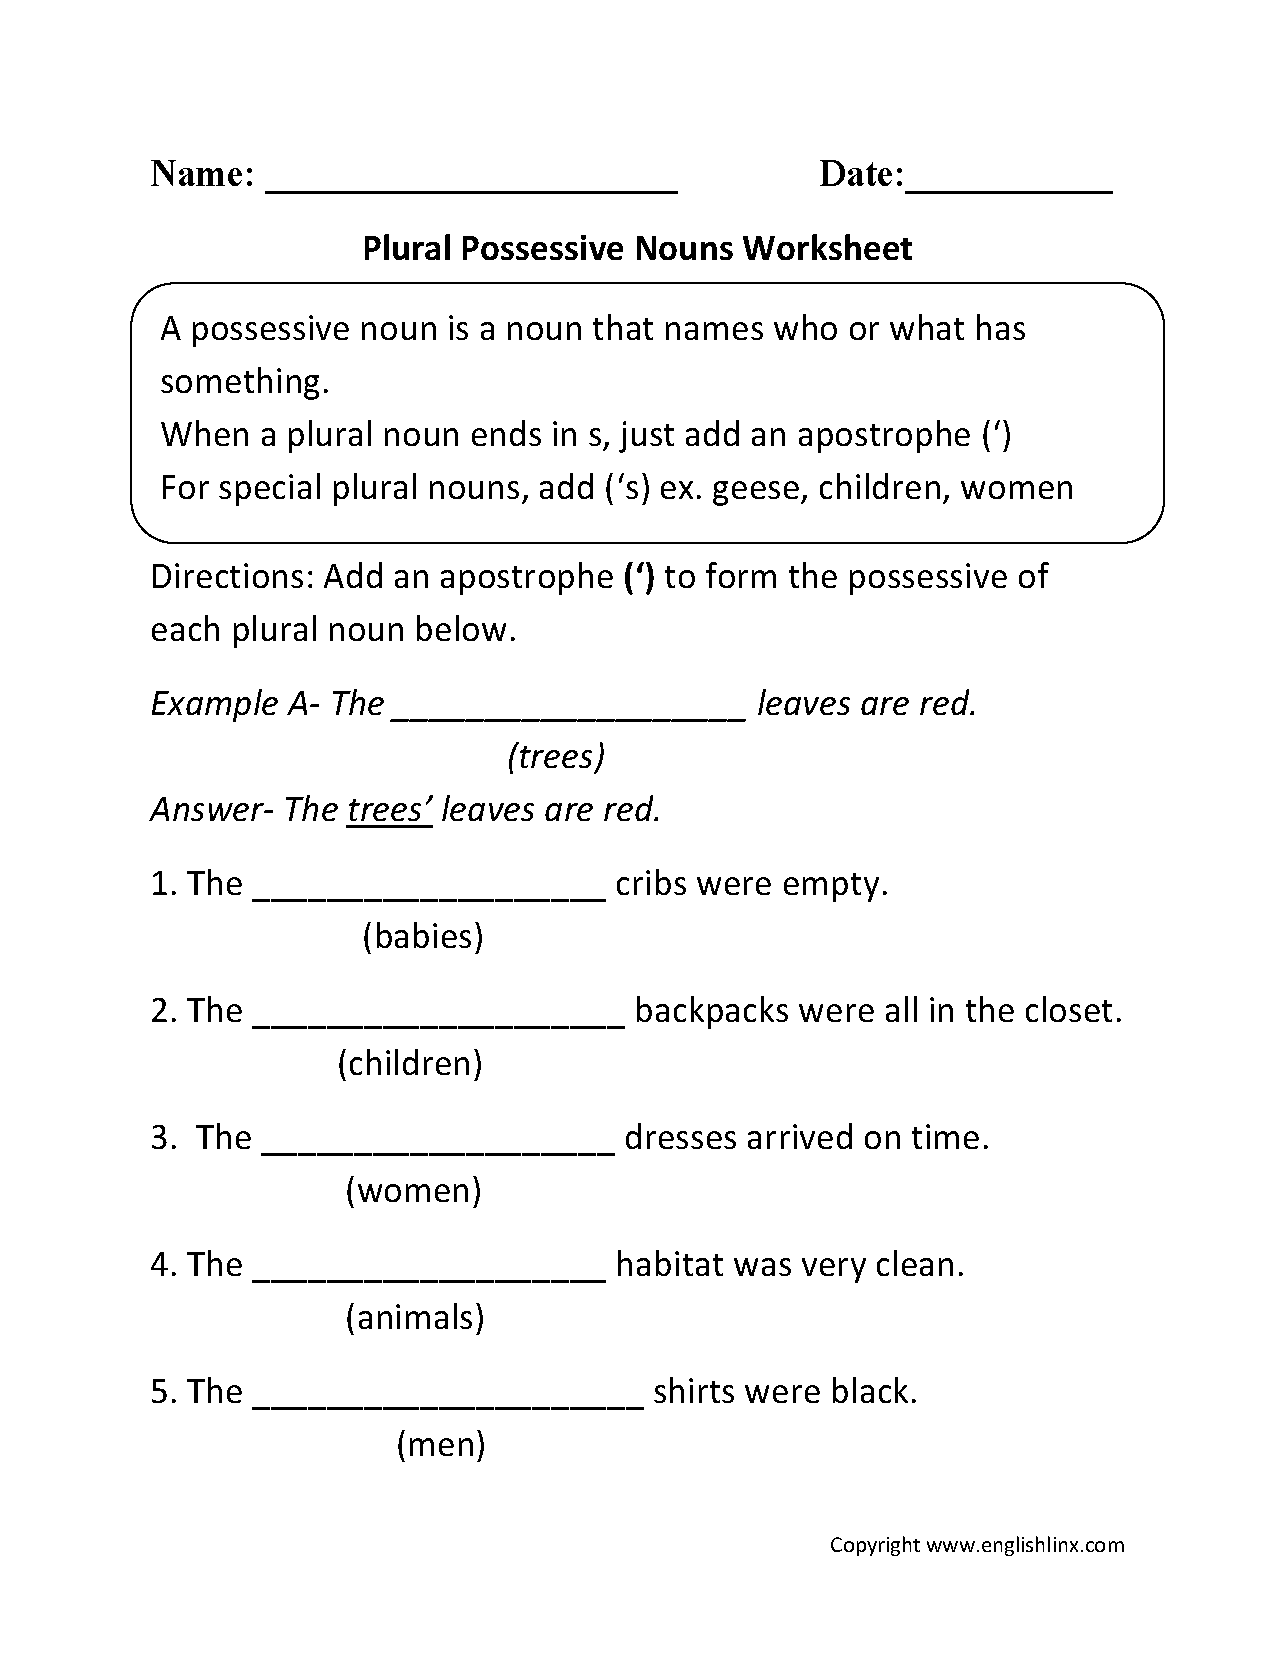 Worksheets Possessive Nouns Worksheet plural possessive nouns worksheets more